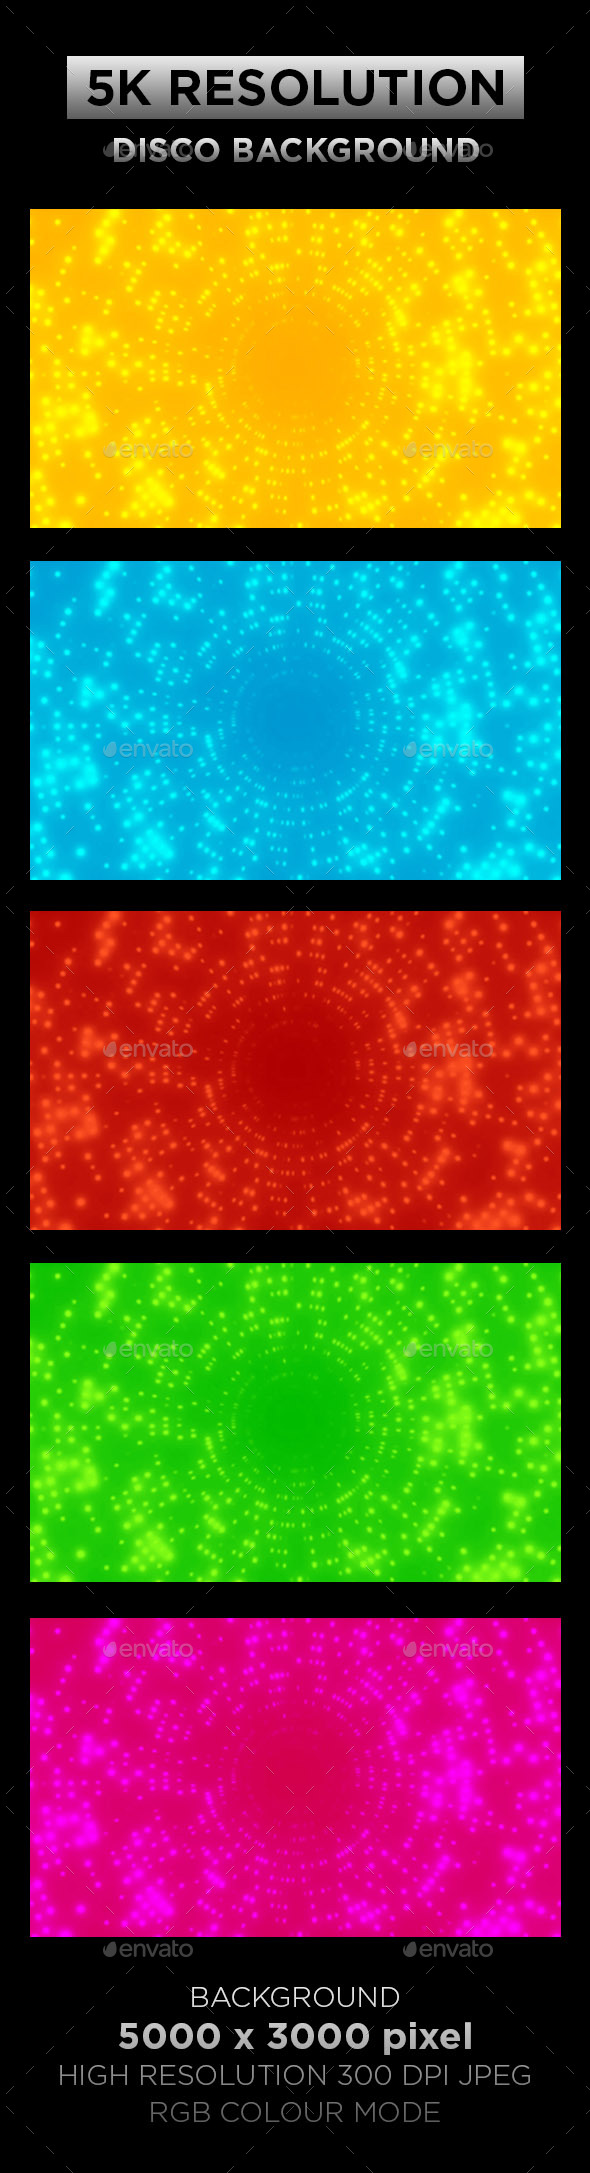 Disco Background 002 - Backgrounds Graphics